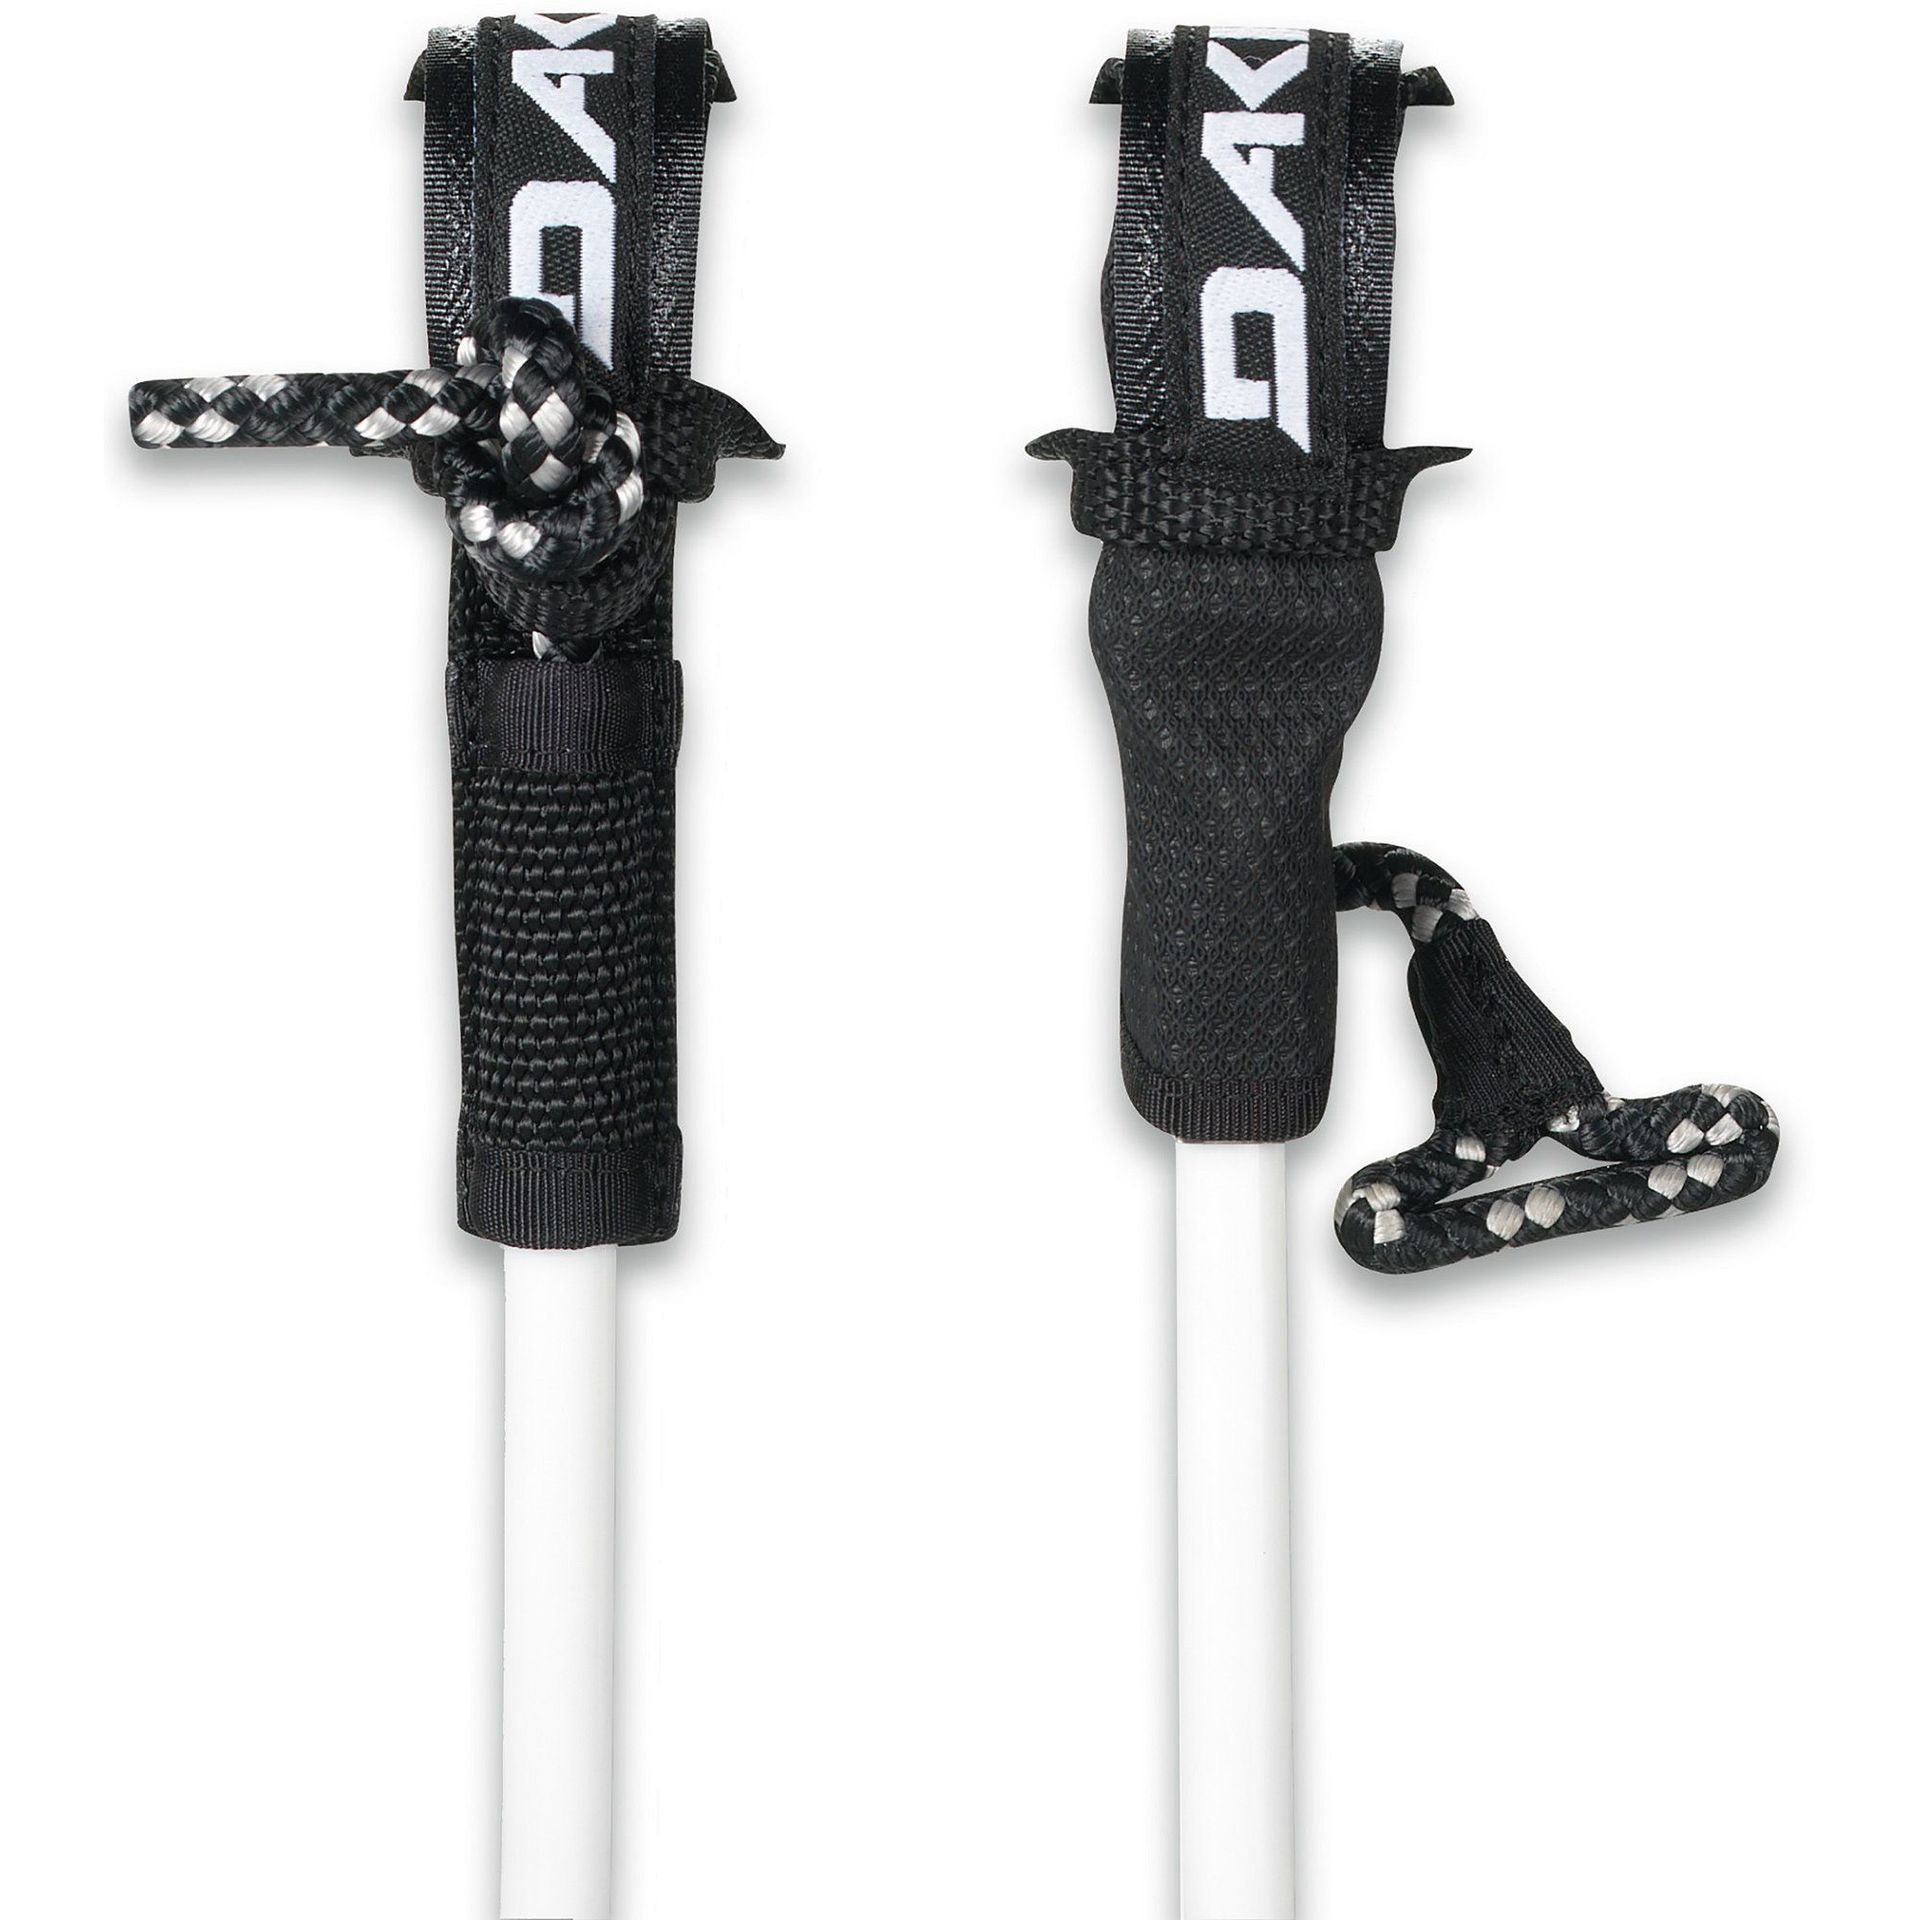 LINKI TRAPEZOWE DAKINE COMP ADJUSTABLE LINES WHITE|BLACK